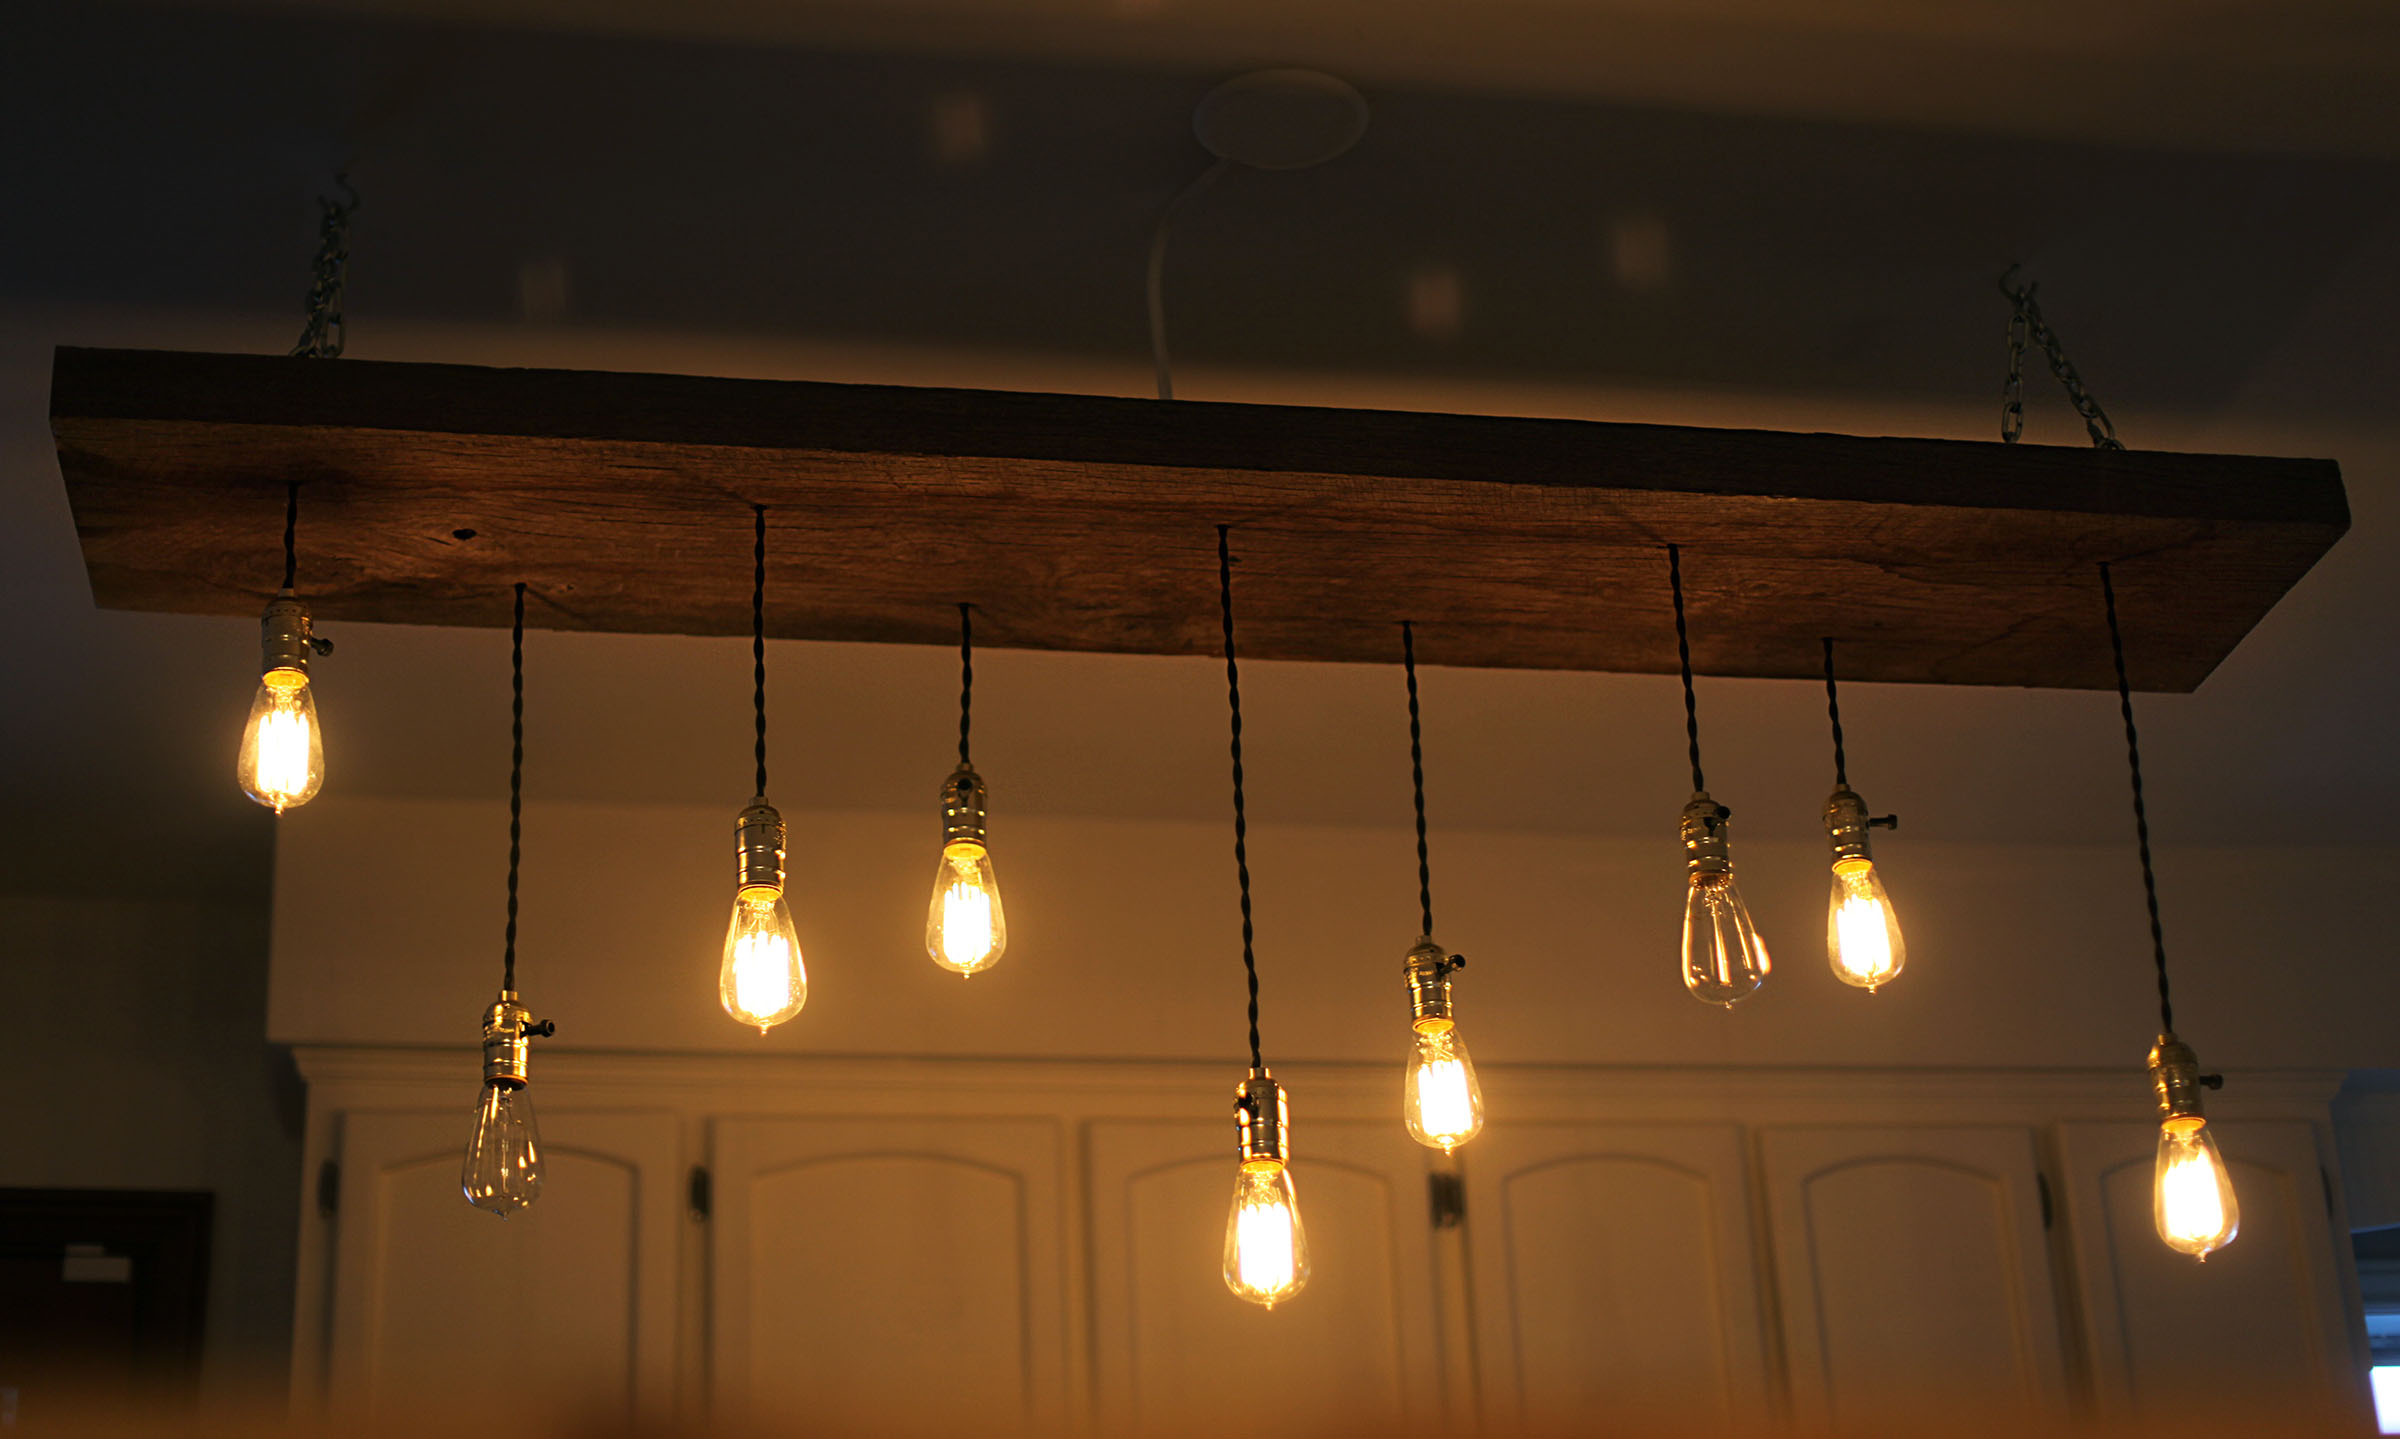 Diy reclaimed lumber hanging edison bulb chandelier unmaintained placing junction boxes wiring lights arubaitofo Images